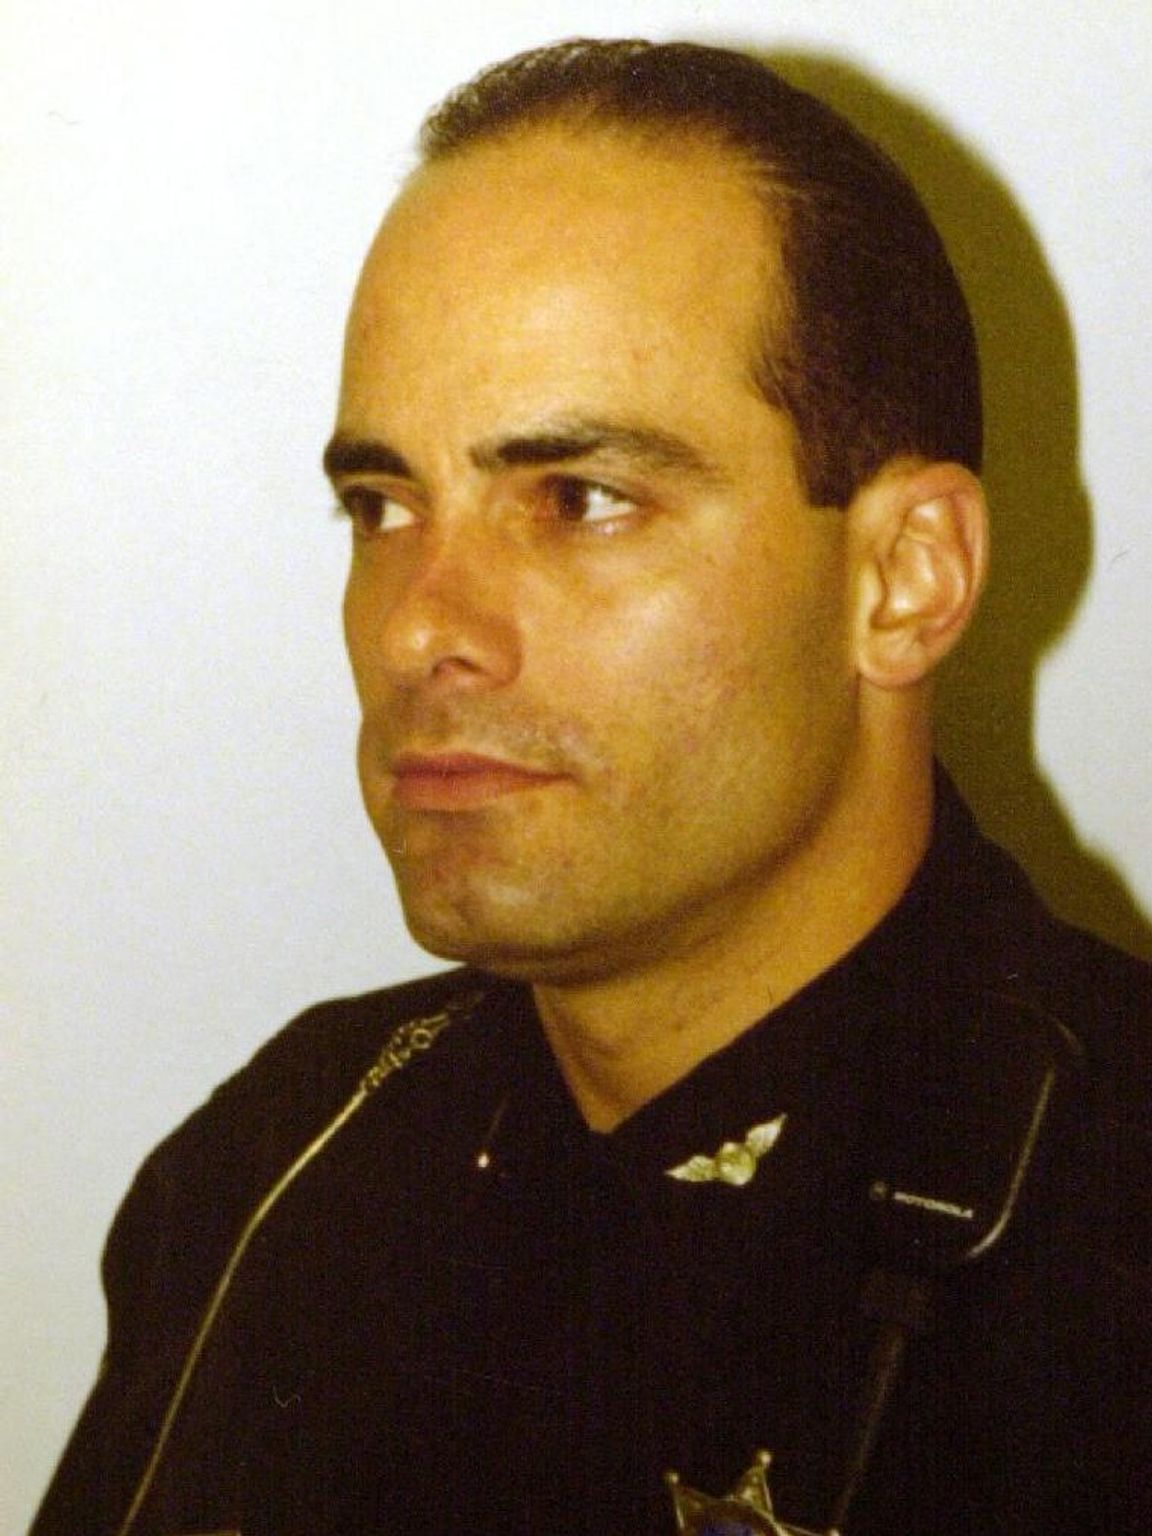 Officer Kevin Tarsia was shot, run over, and killed by Sweat and two of his accomplices